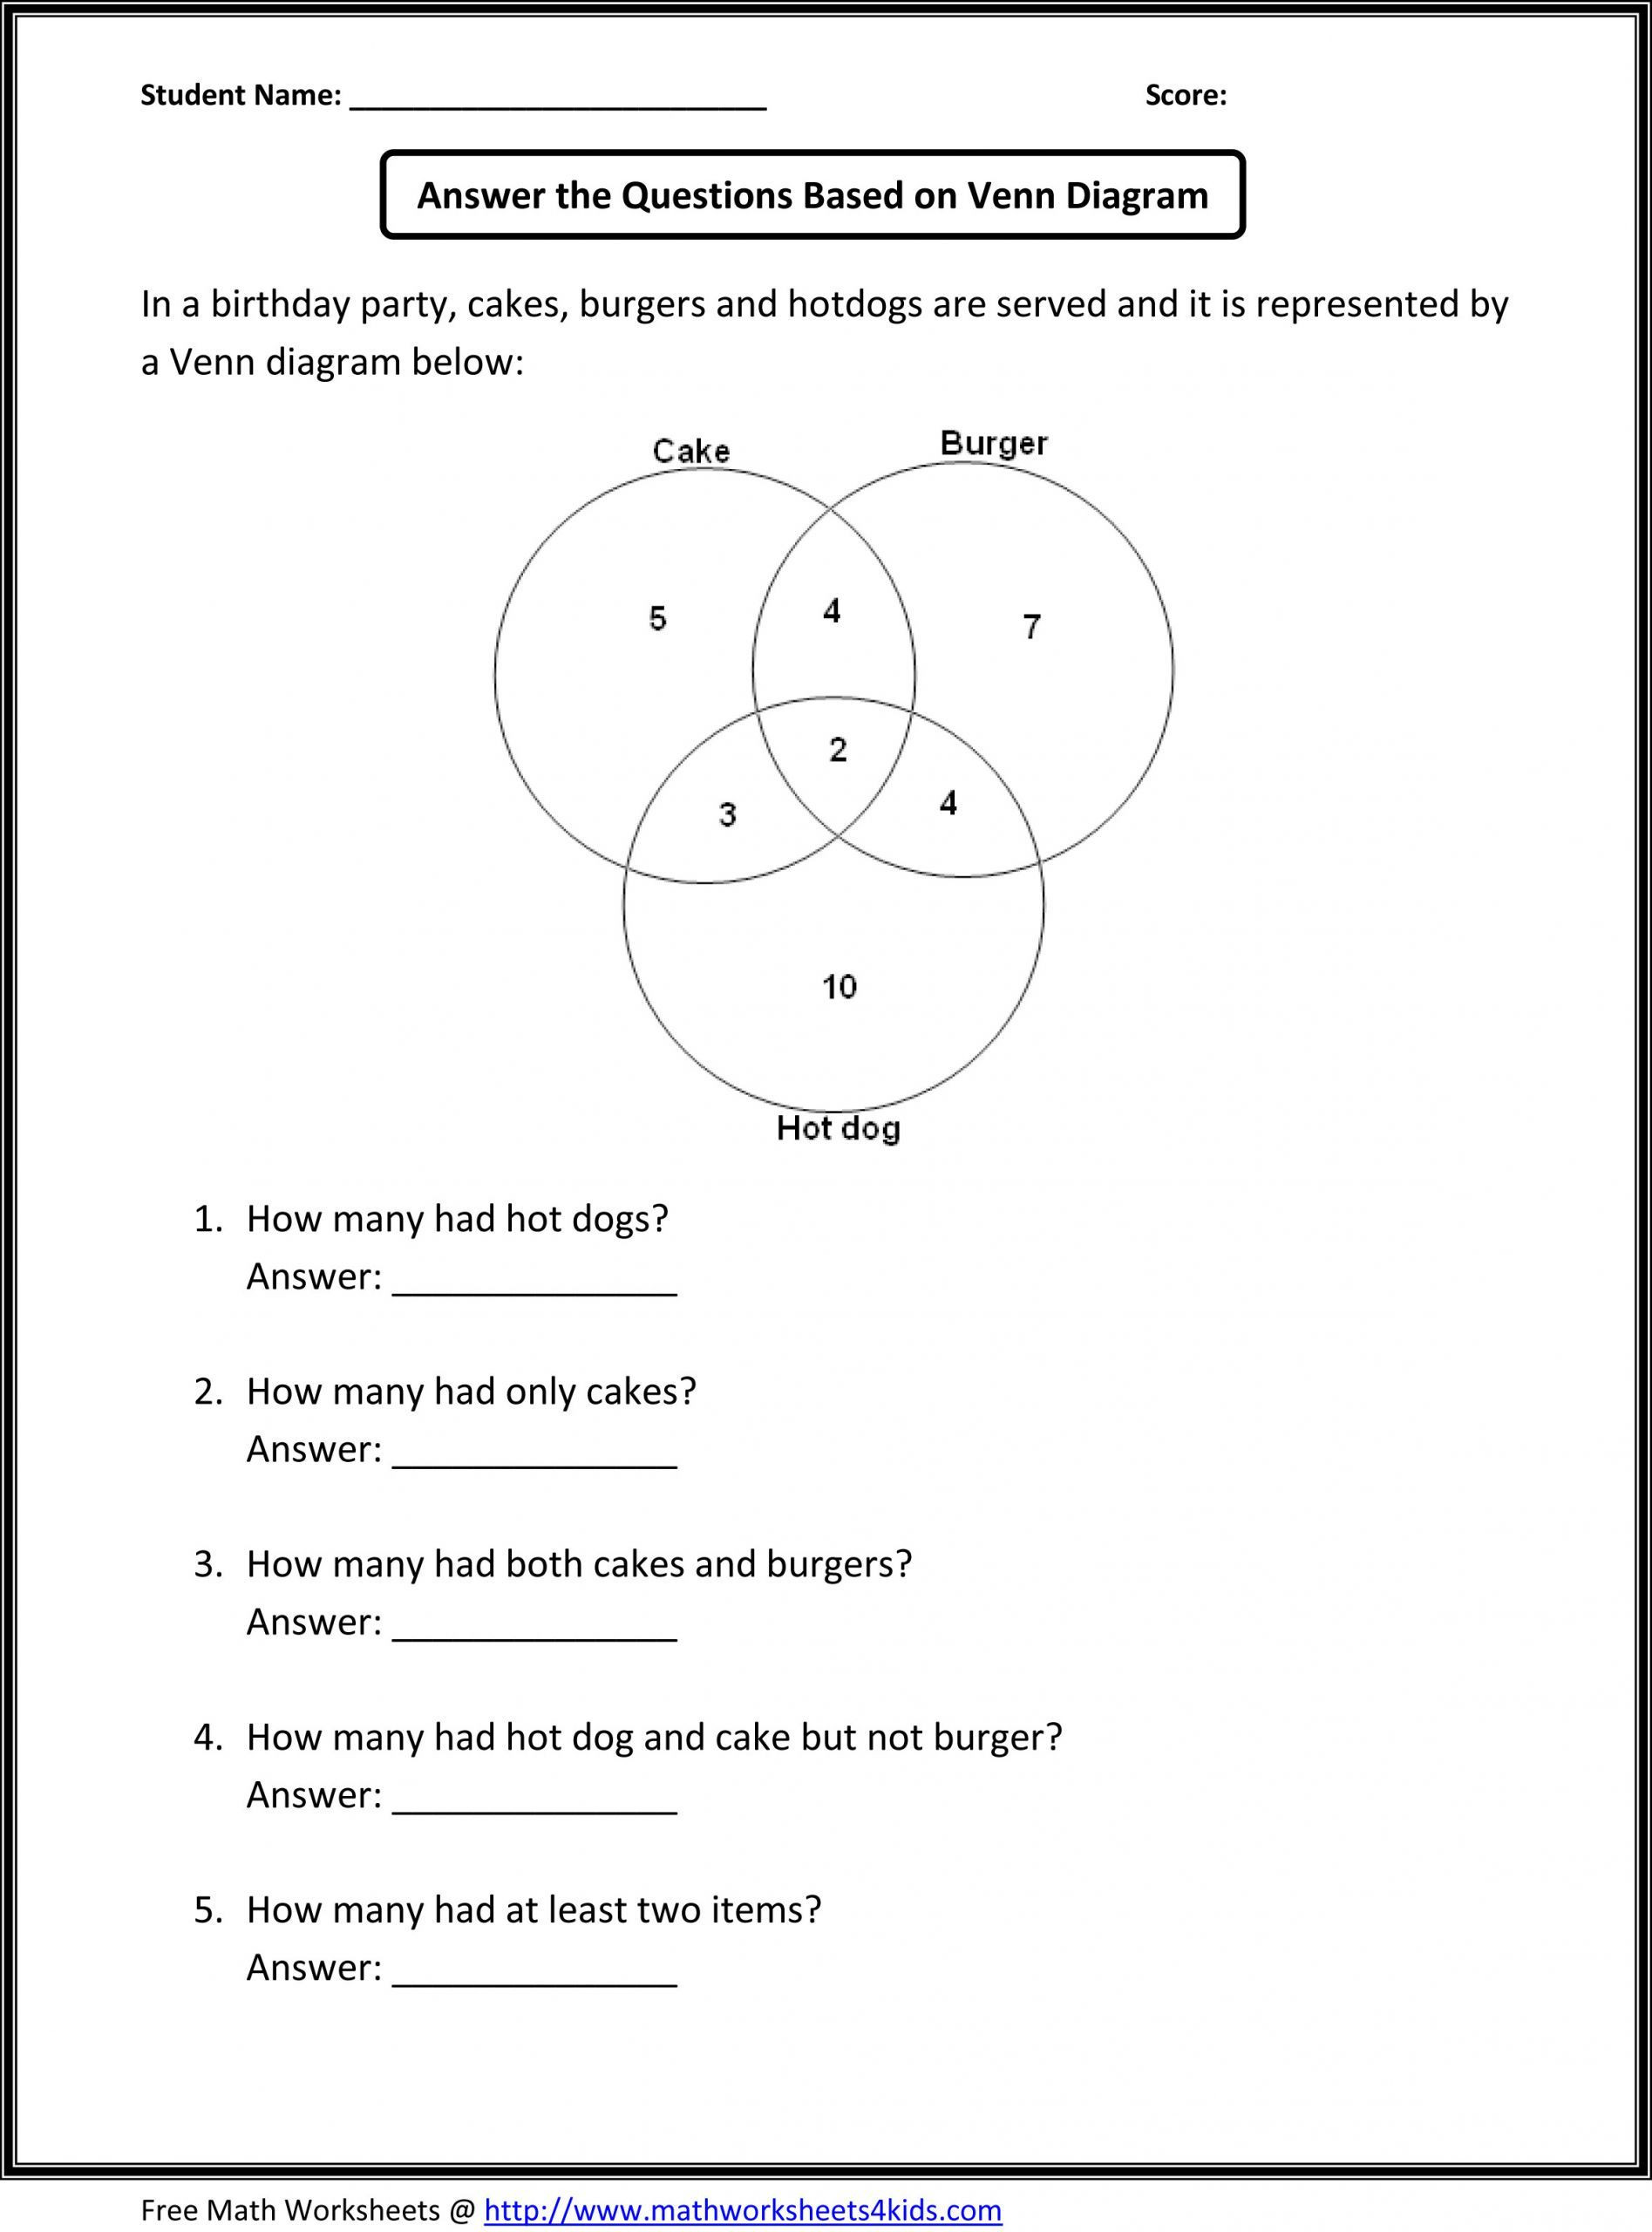 30 Venn Diagram Word Problems Worksheet